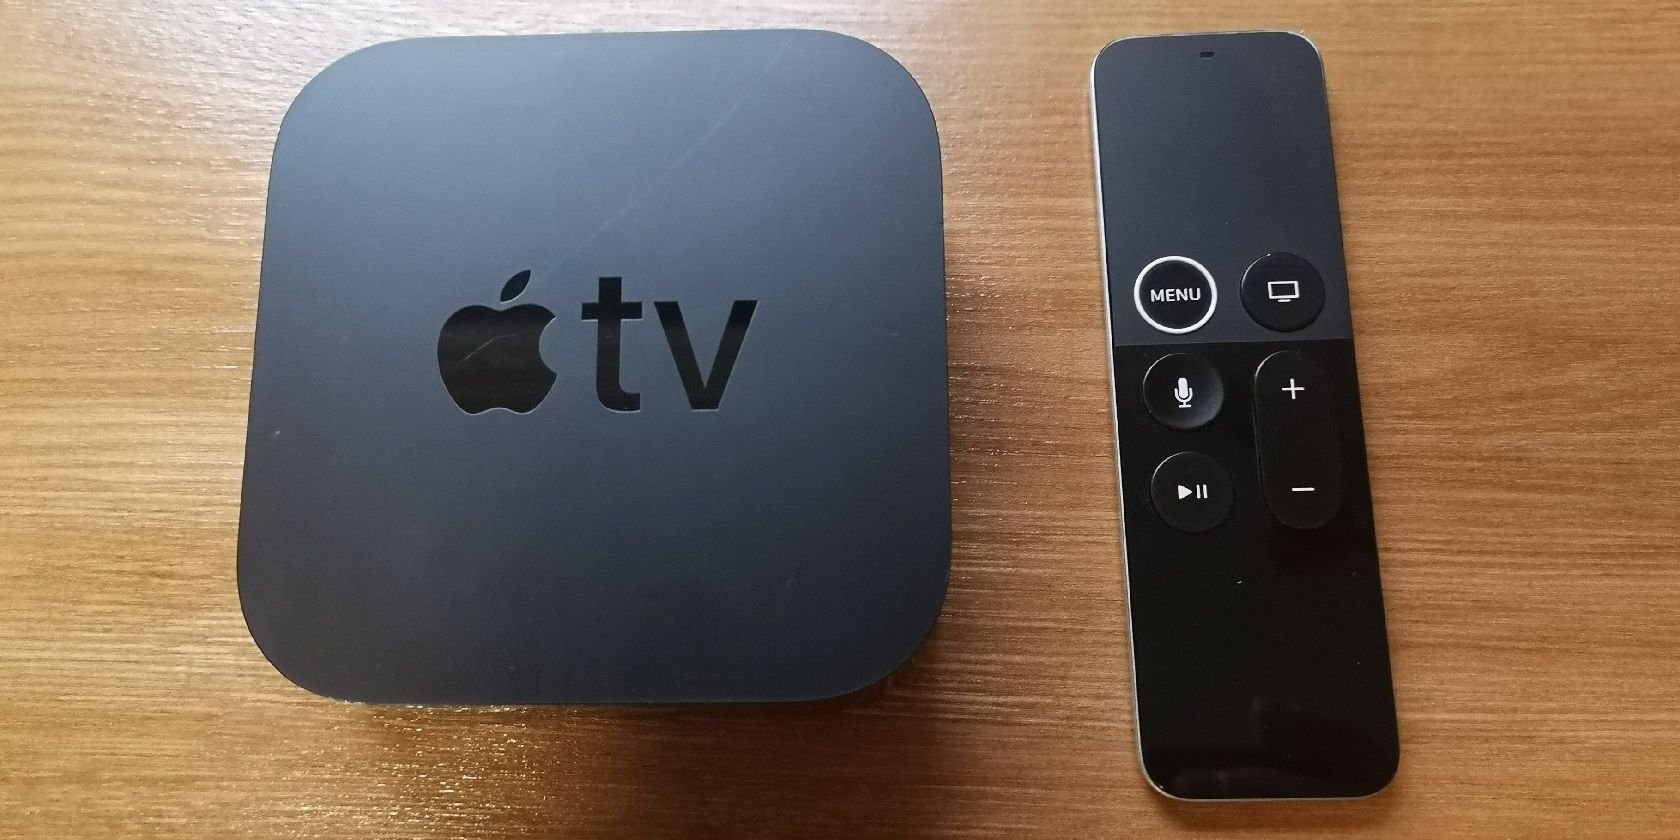 How Does the Apple TV Work?